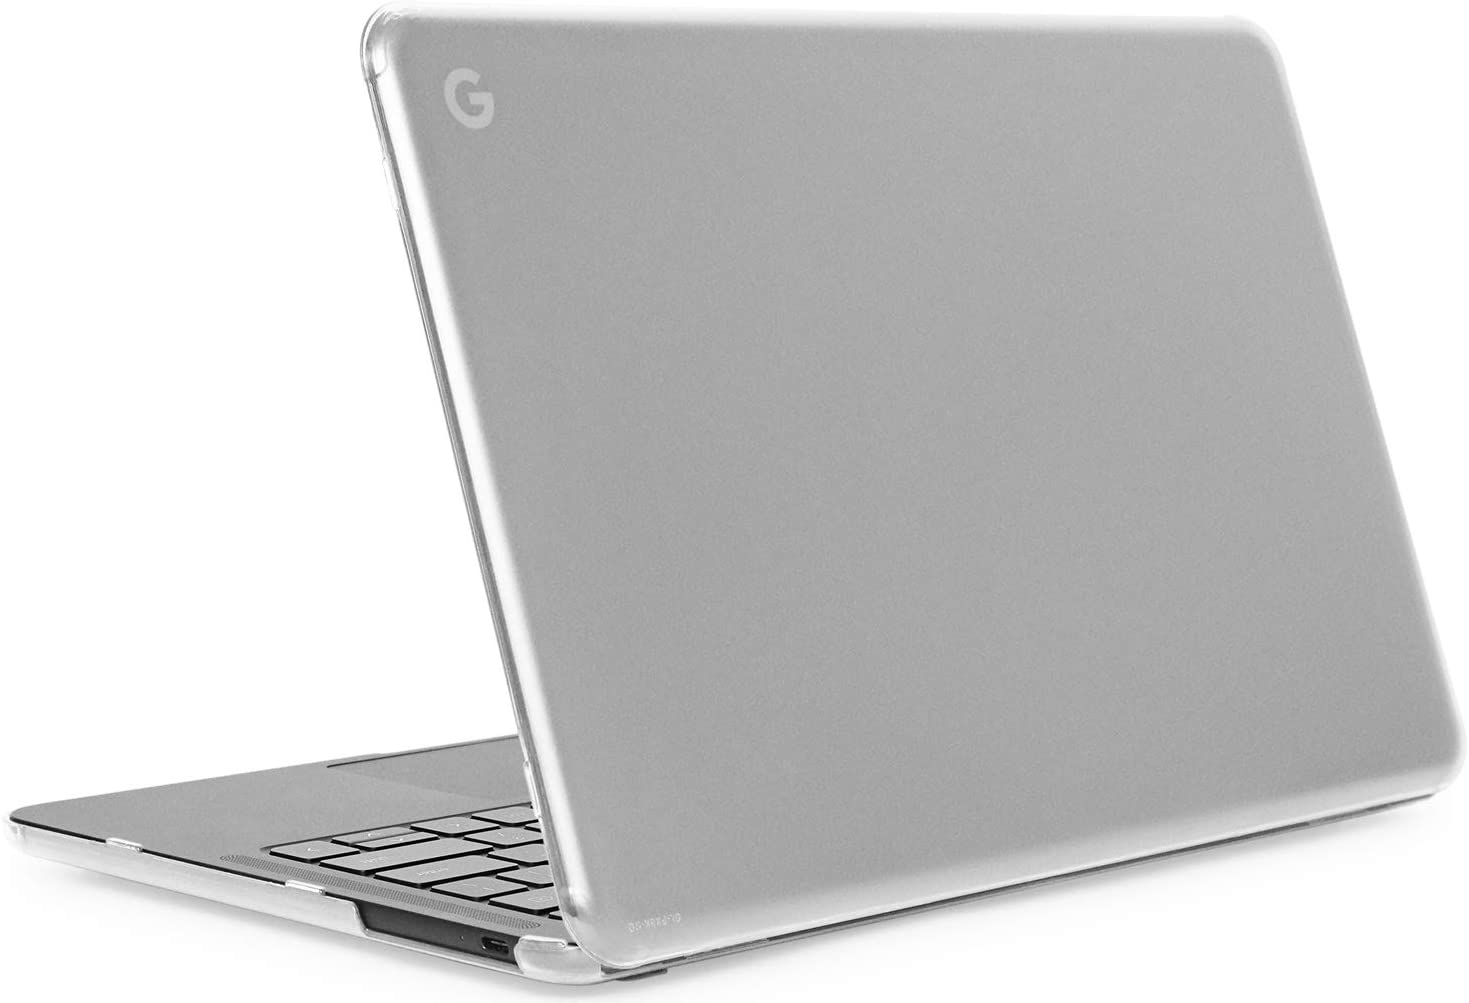 "mCover Hard Shell Case for Late-2019 13.3"" Google Pixelbook Go Chromebook Laptop Computers (NOT Compatible Older Model Released Before 2019) laptops (PixelbookGo Clear)"